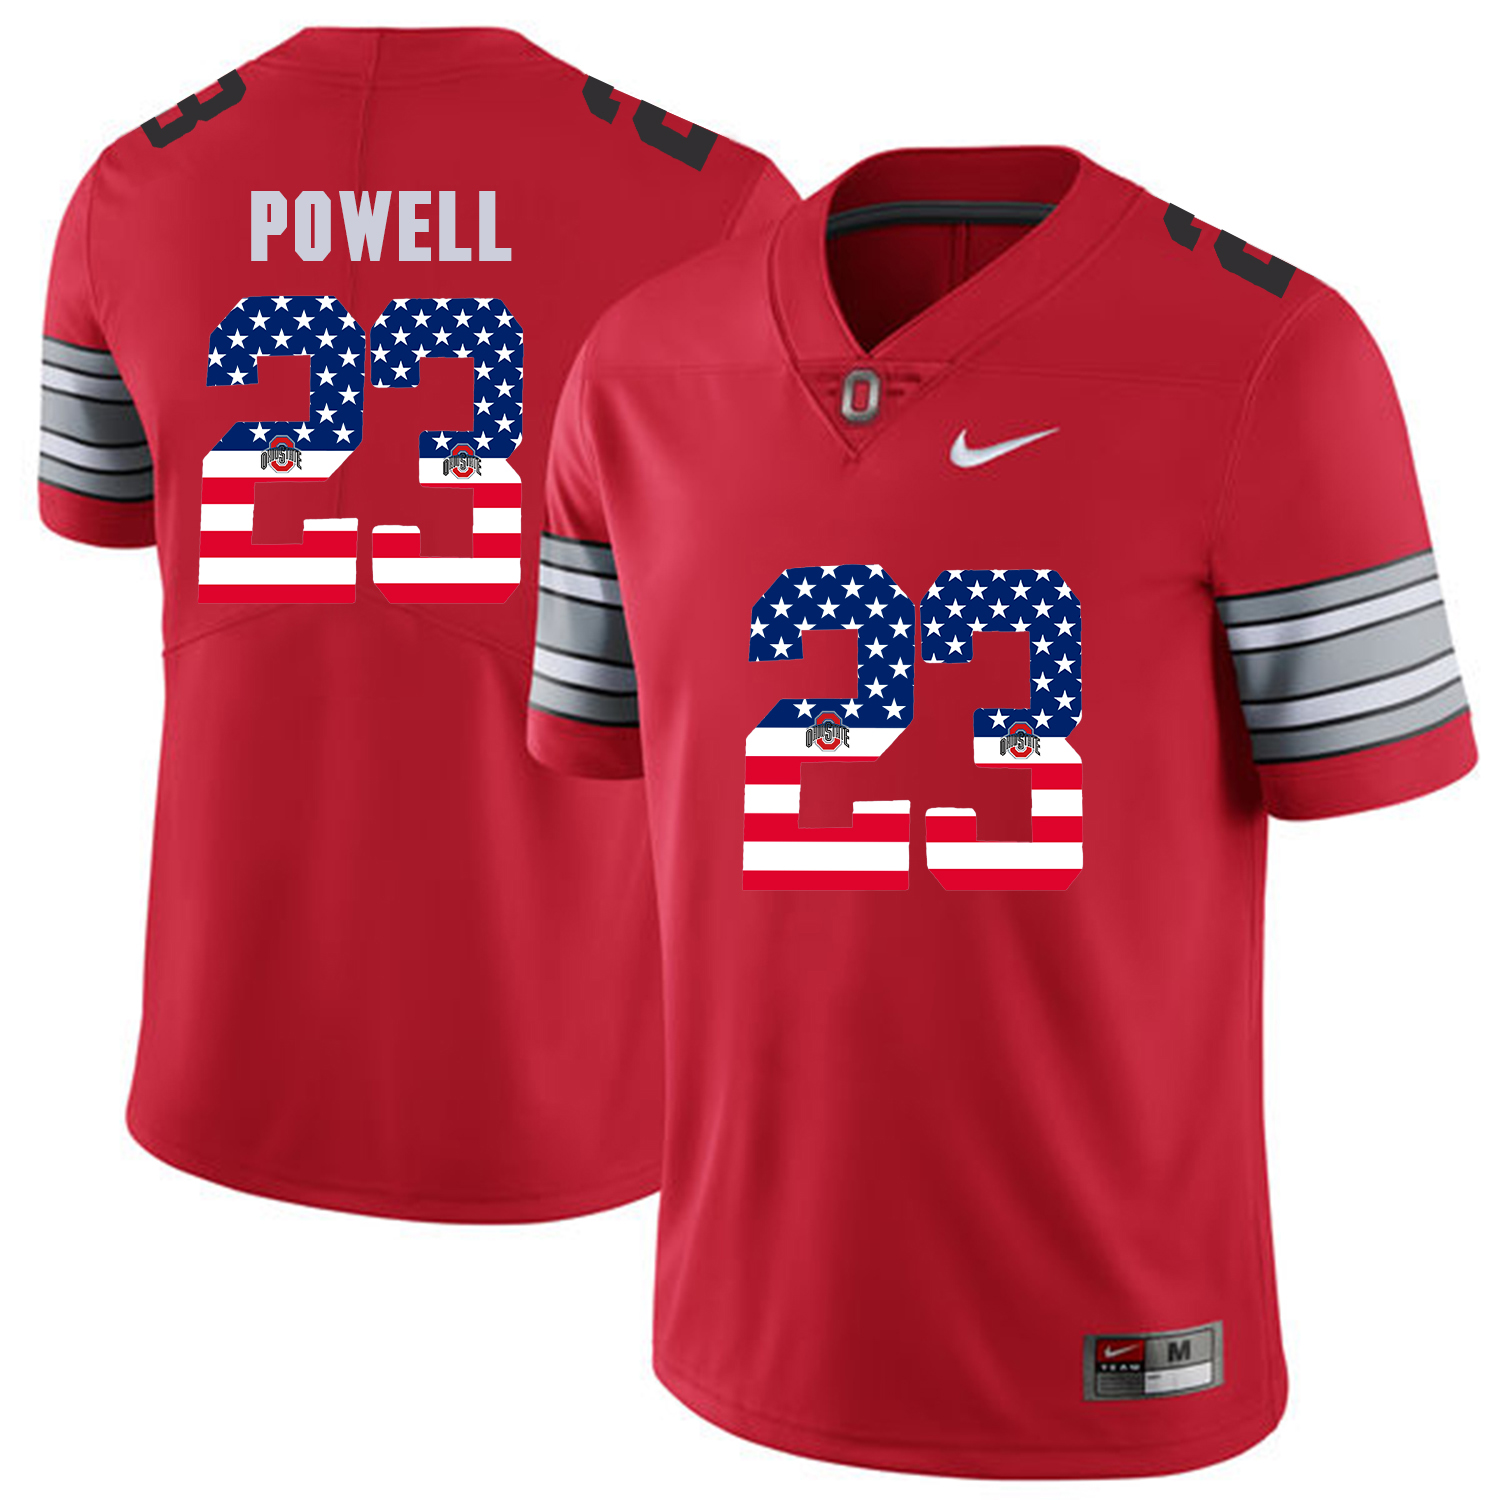 Men Ohio State 23 Powell Red Flag Customized NCAA Jerseys